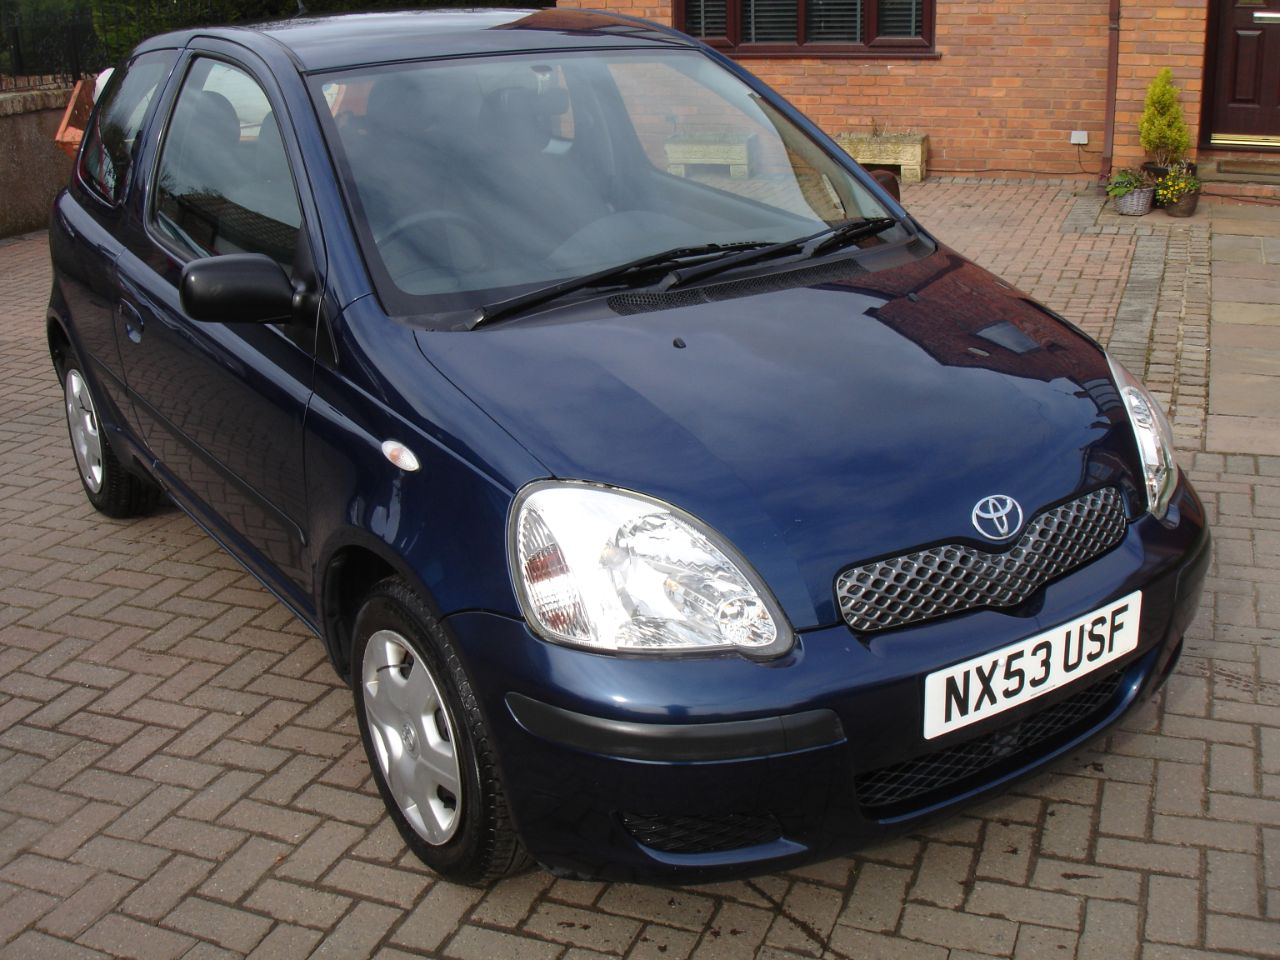 Toyota Yaris 1.3 VVT-i T3 3dr Hatchback Petrol Metallic Blue at Level Pitch Selby